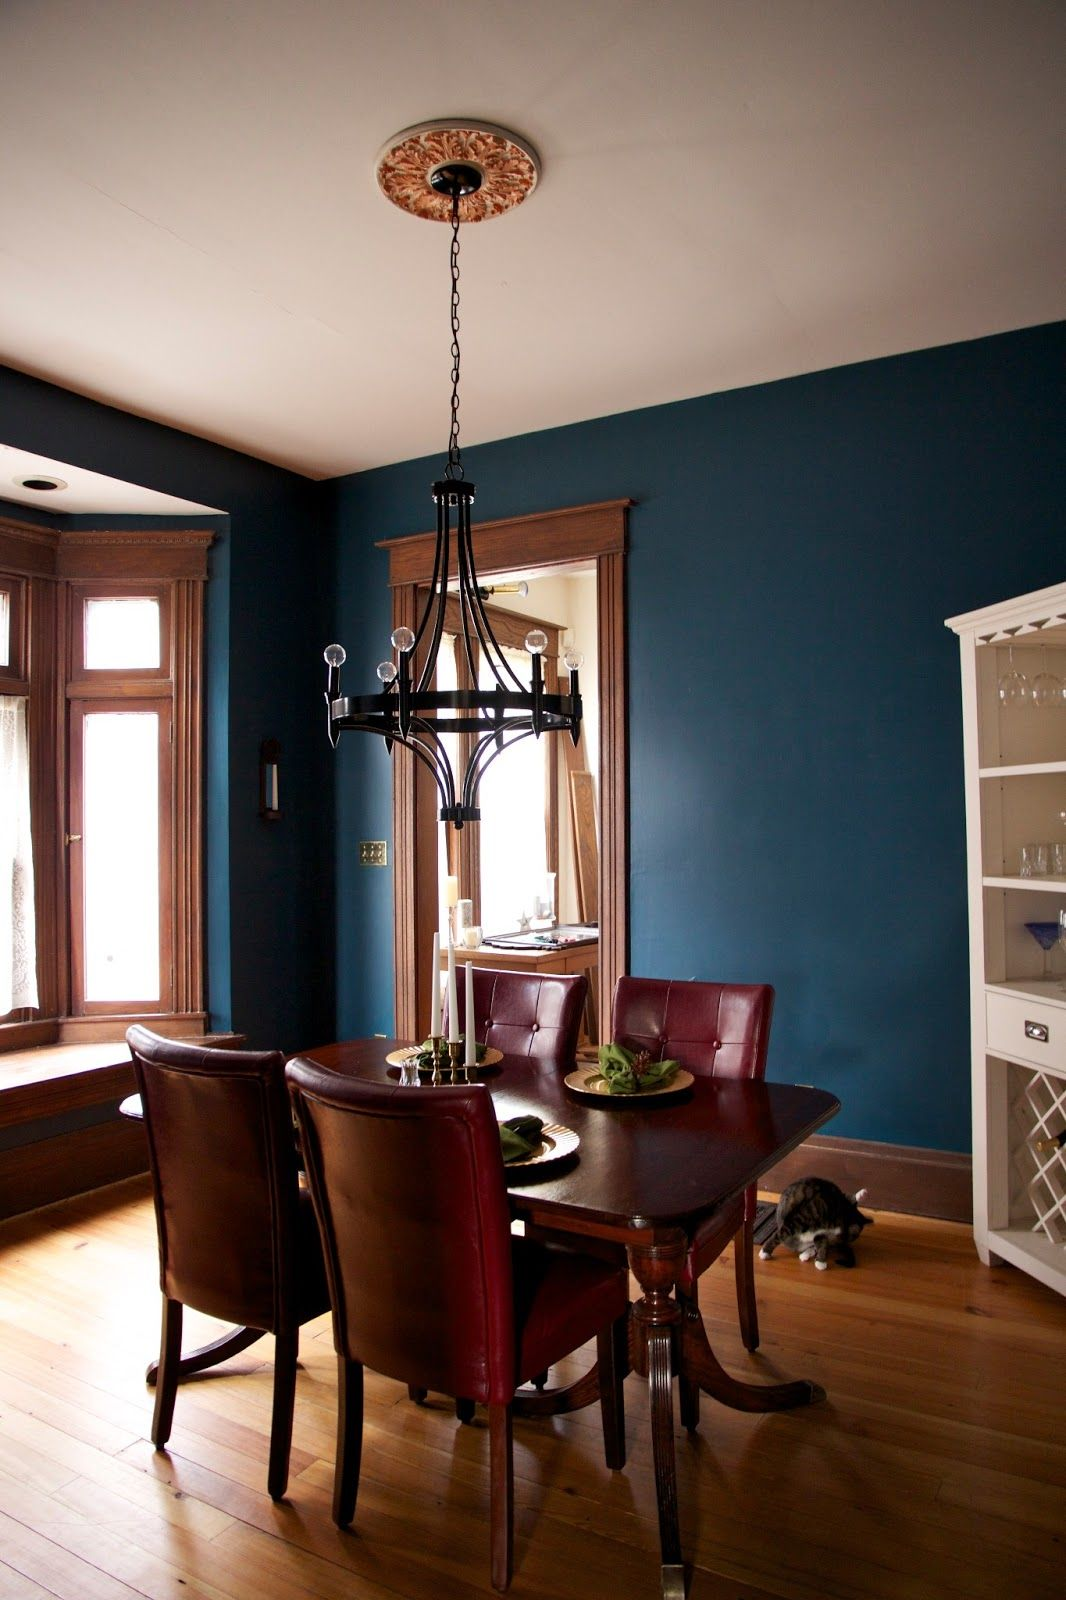 Dining Room Paint Ideas Pinterest: Dark Teal Wall Paint And Unpainted Wooden Trim For The